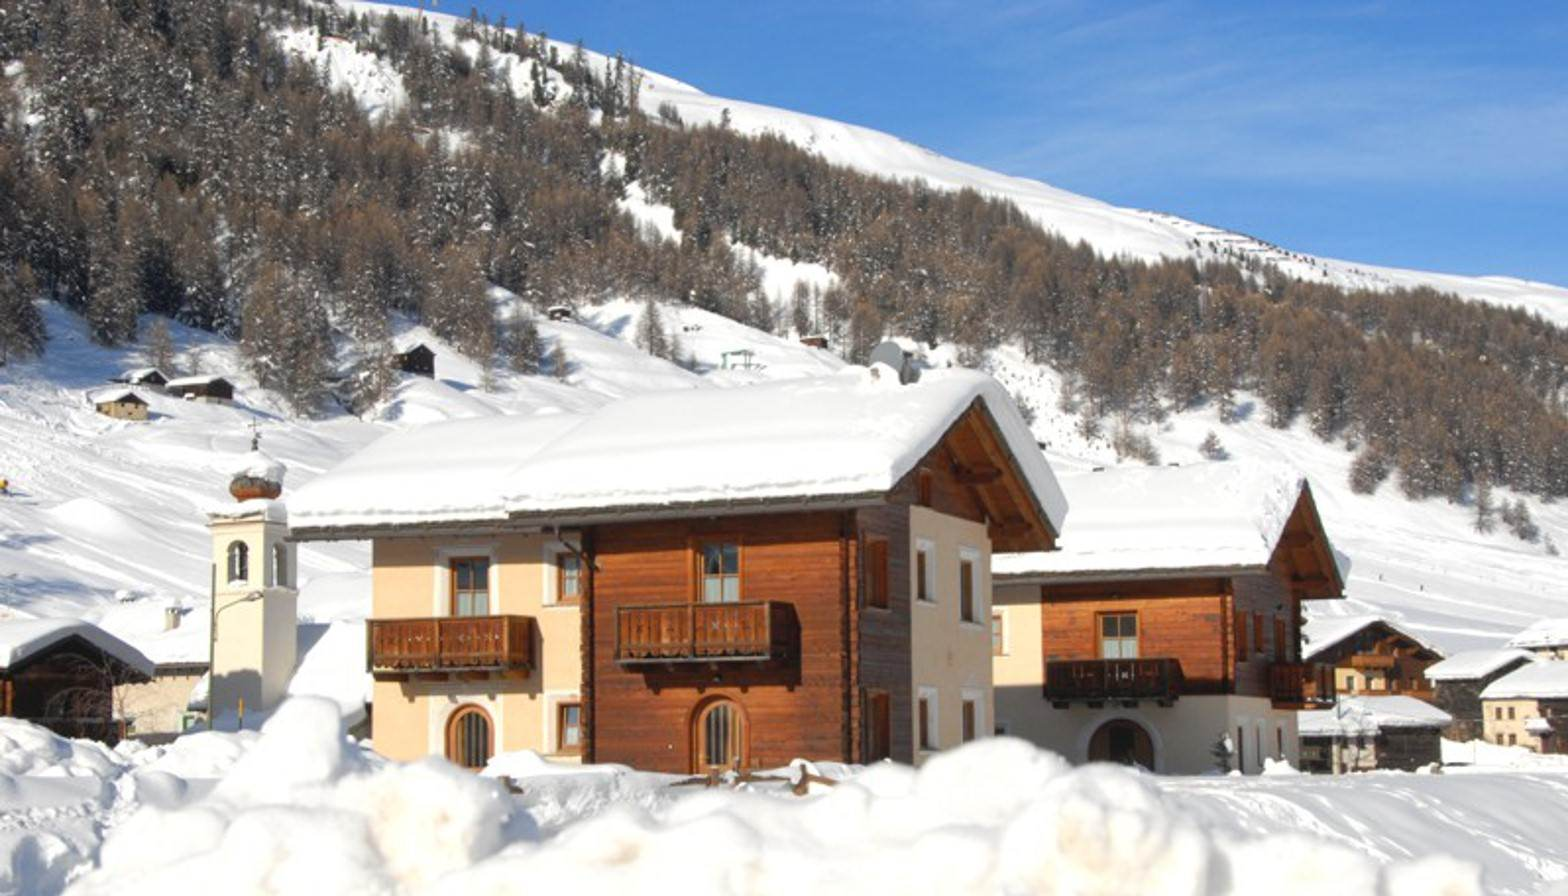 Appartement Marissa in Livigno, Appartement Marissa / Italien